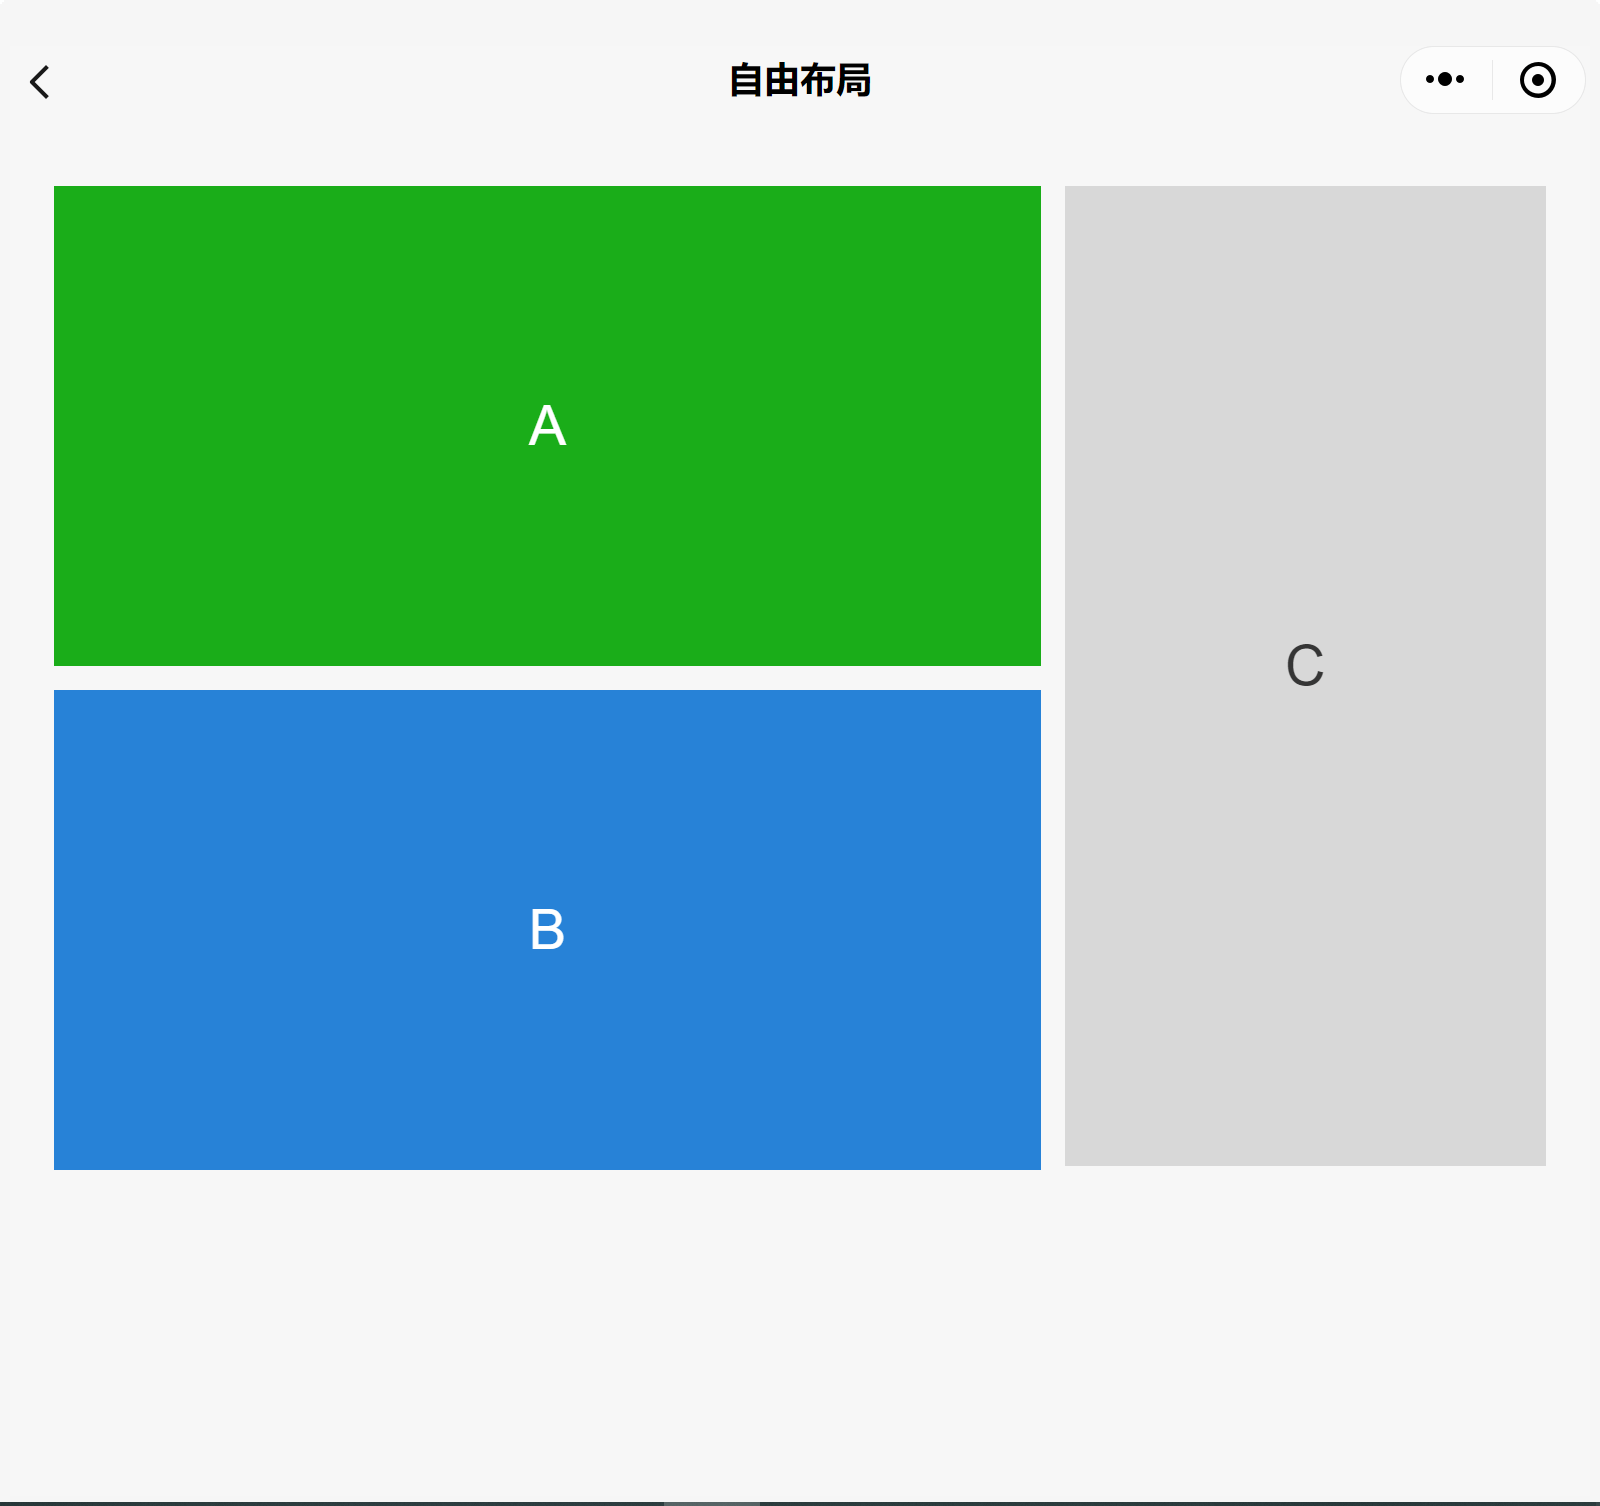 The WeChat components demo app in a wide window showing three boxes A, B, and C with A stacked on top of B and C on the side.